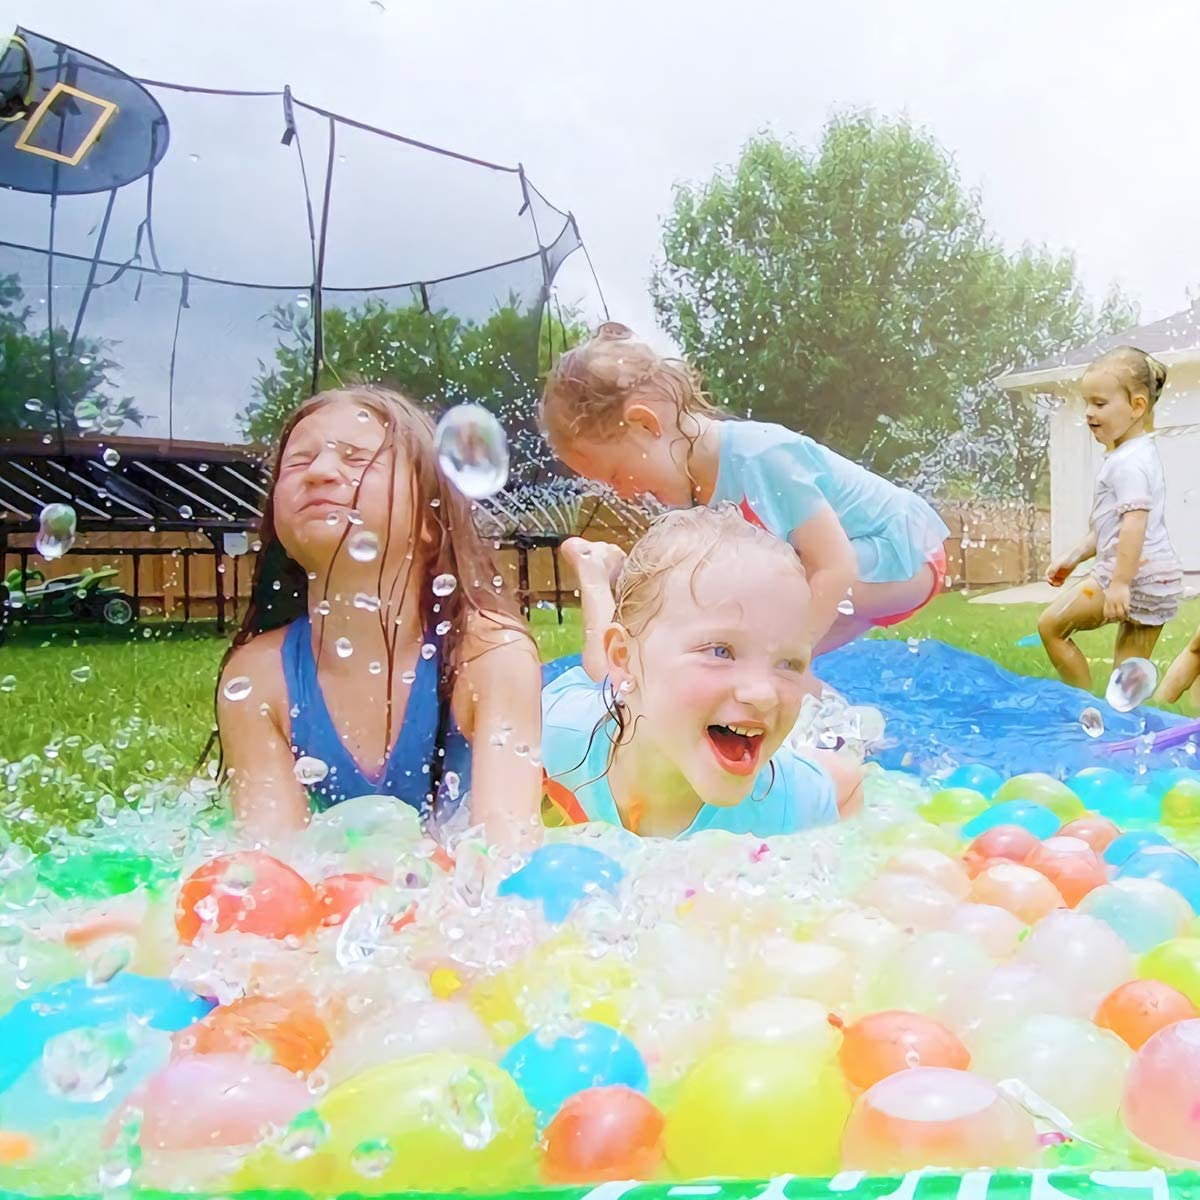 Vimzone Water Balloons 1000pcs Self Sealing Easy /& Fast Filling Water Bombs Multicoloured Bunch Balloons with 4 Fillers /& 1000 Rubber Bands Summer Splash Fun Water Fight Game for Kids /& Adults